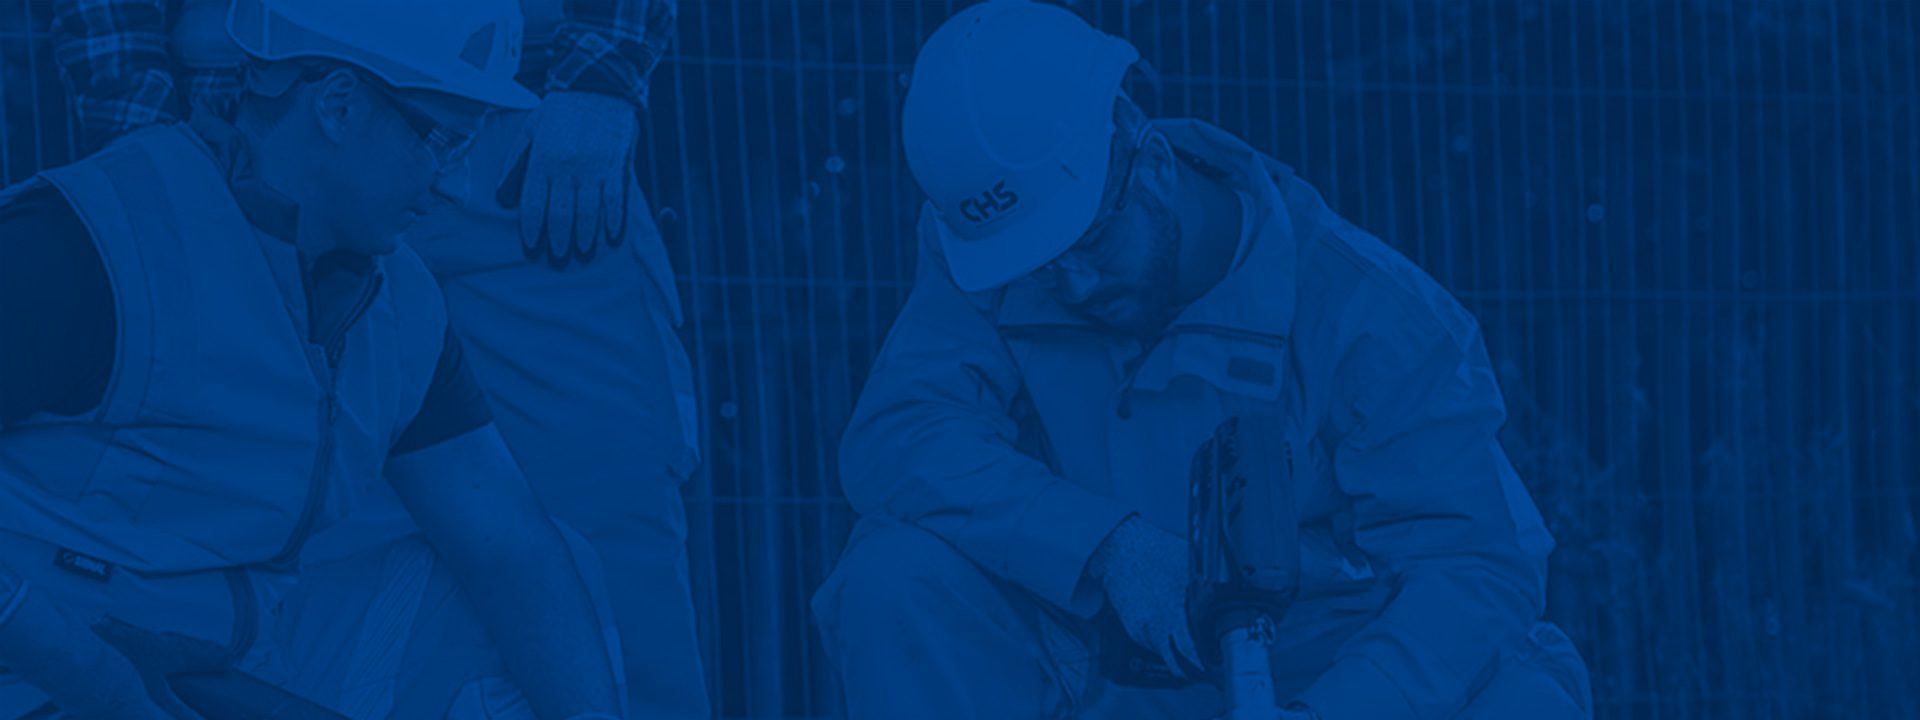 Specialising in Rail Safety Equipment